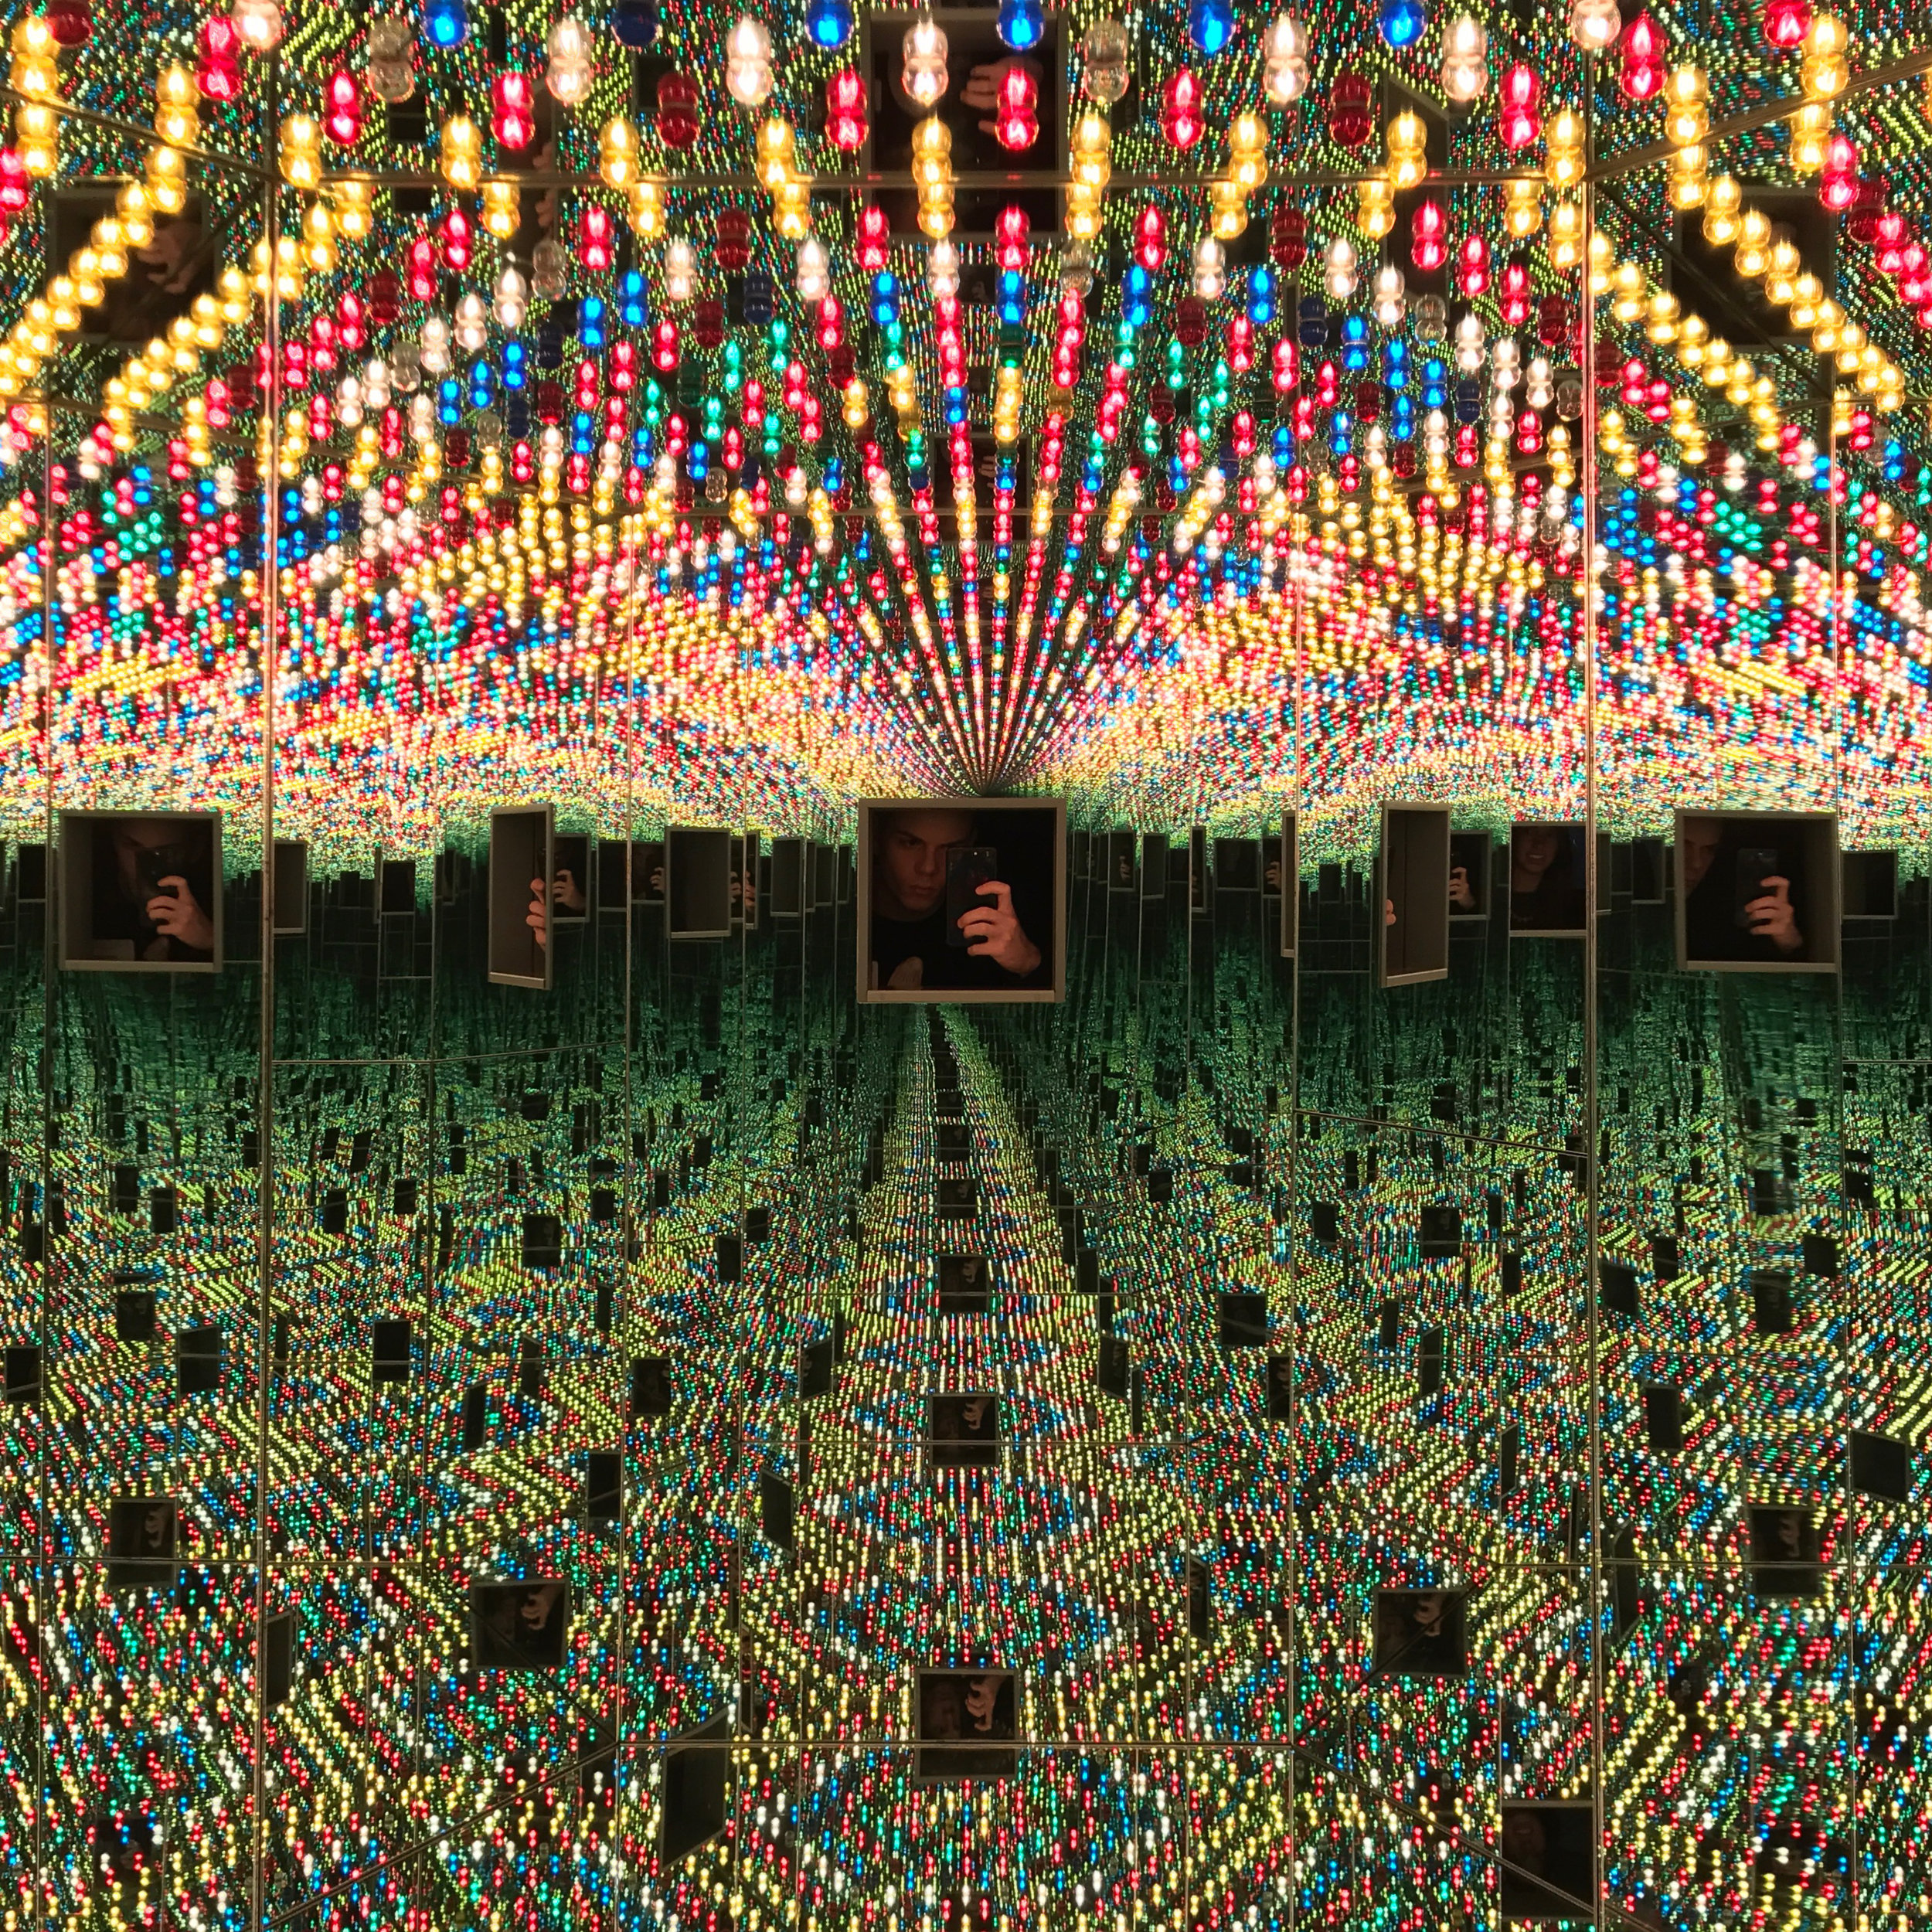 Infinity Mirrored Room -Love Forever